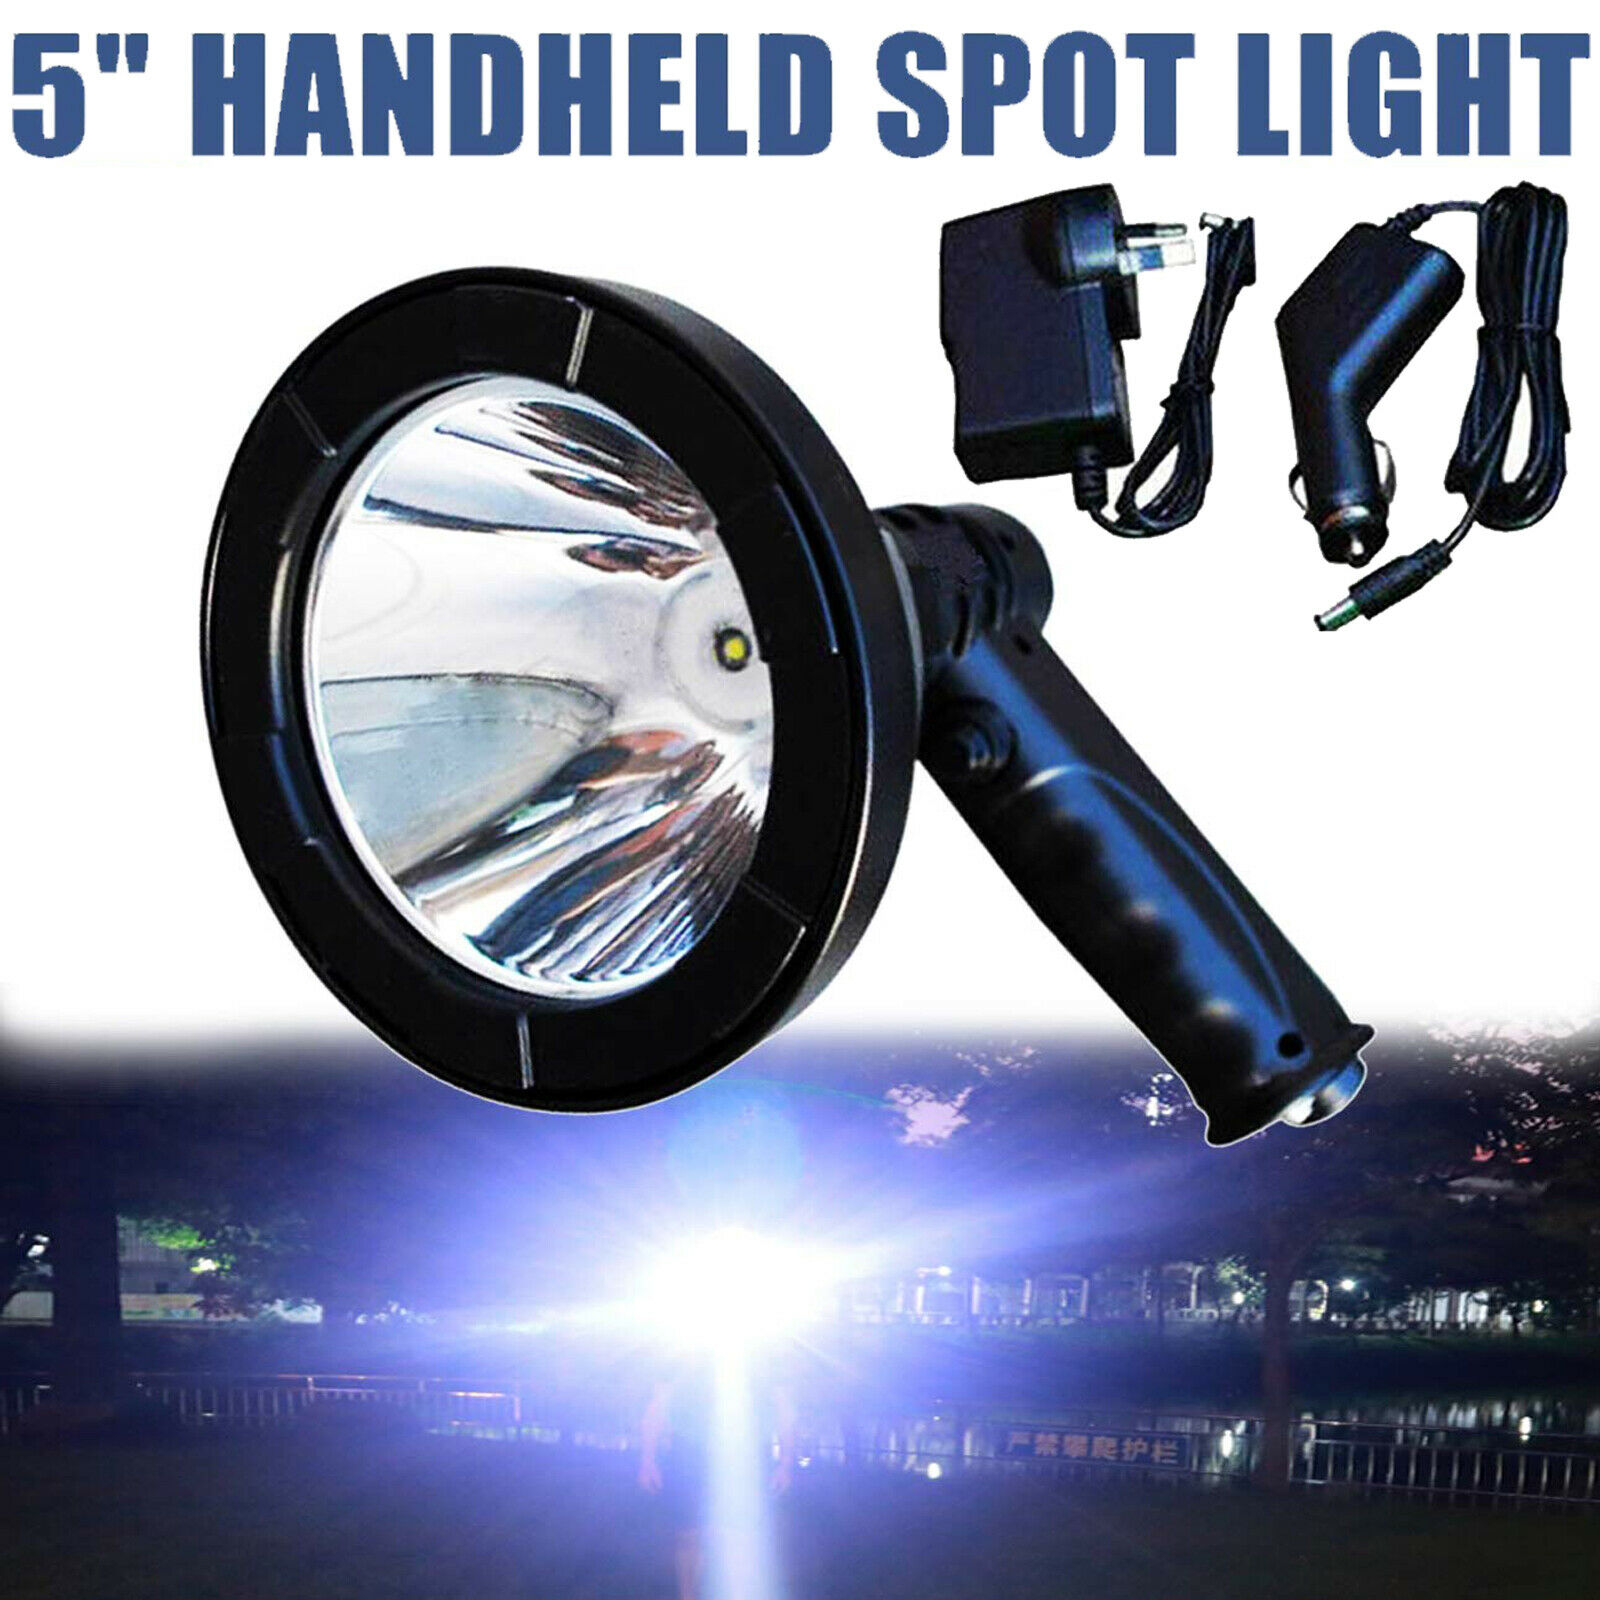 5INCH LED Handheld Spotlight Rechargeable Torch Hunting Fishing Spot Light 2000W